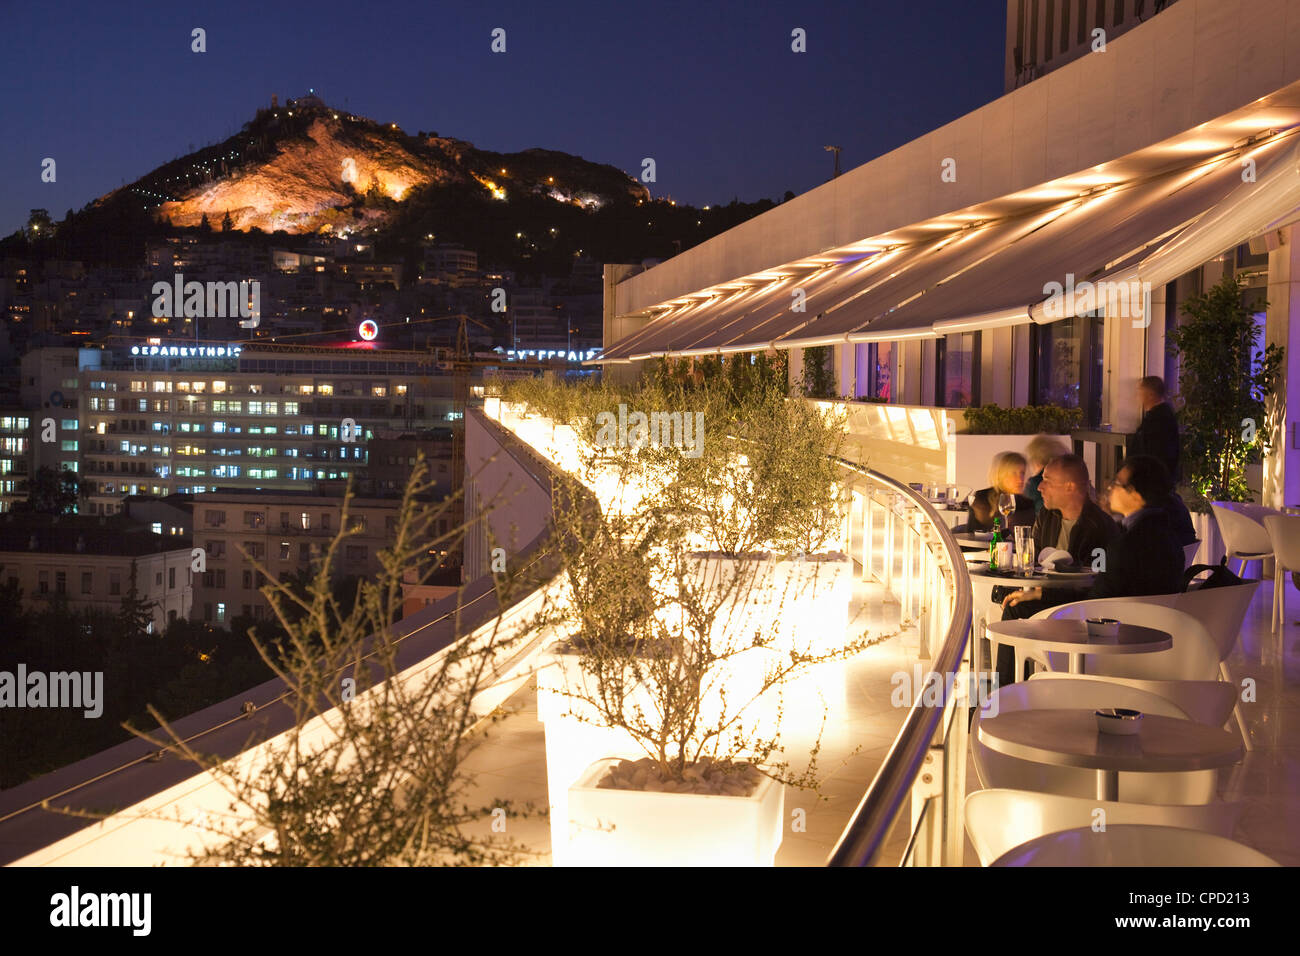 Rooftop terrace bar at the Athens Hilton with Lykavittos Hill illuminated at night, Athens, Greece, Europe - Stock Image